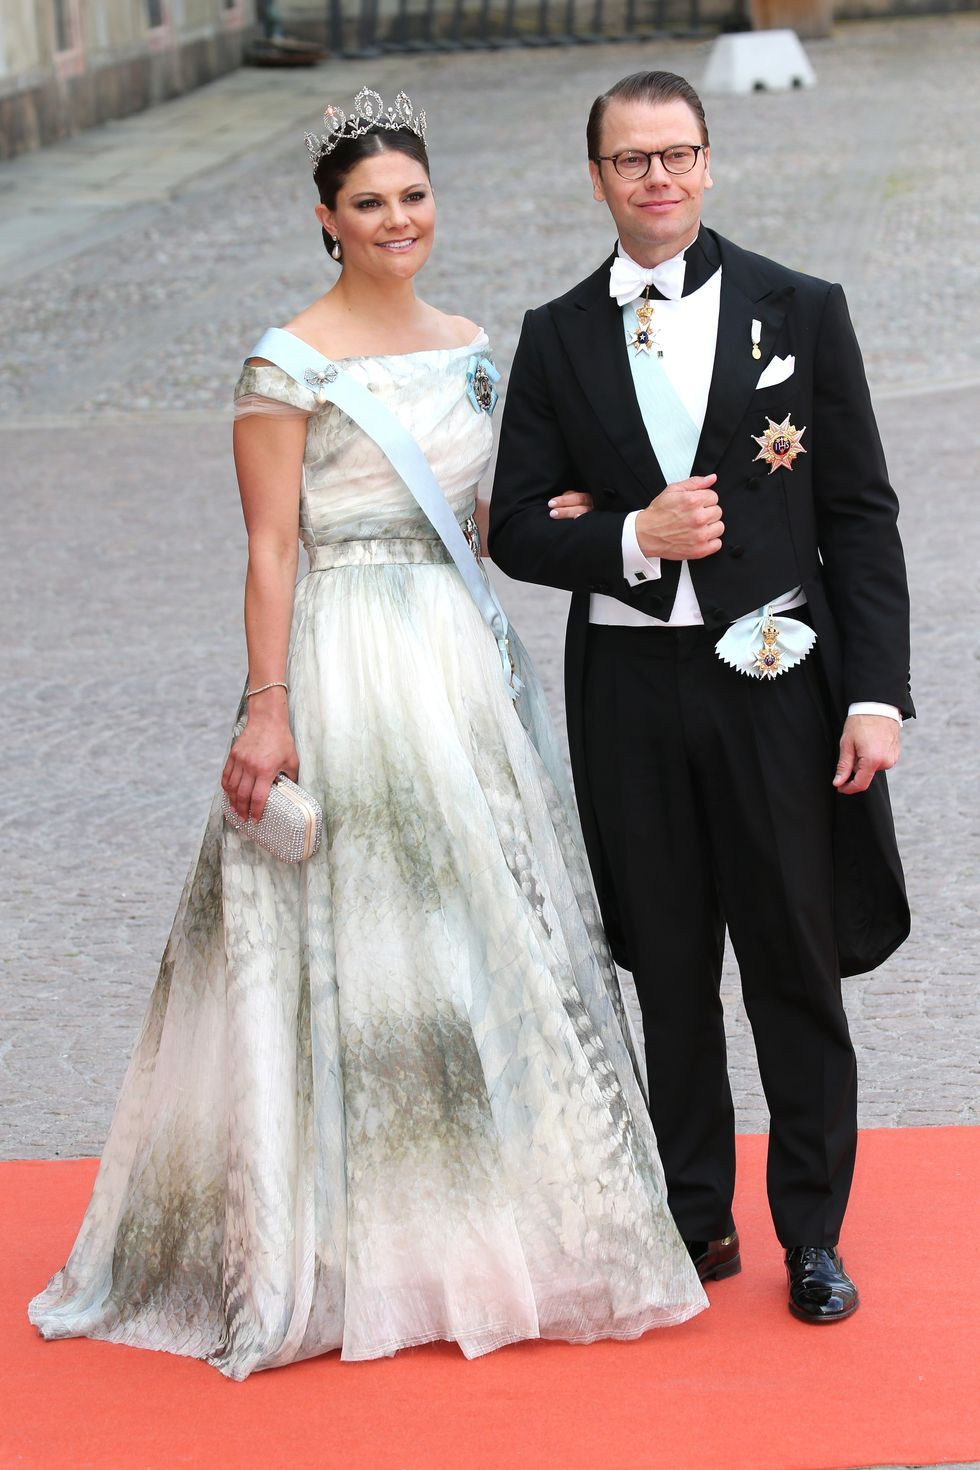 Look Back At The Breathtaking Pictures From Prince Carl Philip And Princess Sofia S Wedding Wedding Dresses Prince Carl Philip Princess Bridal Gown [ 2577 x 2048 Pixel ]